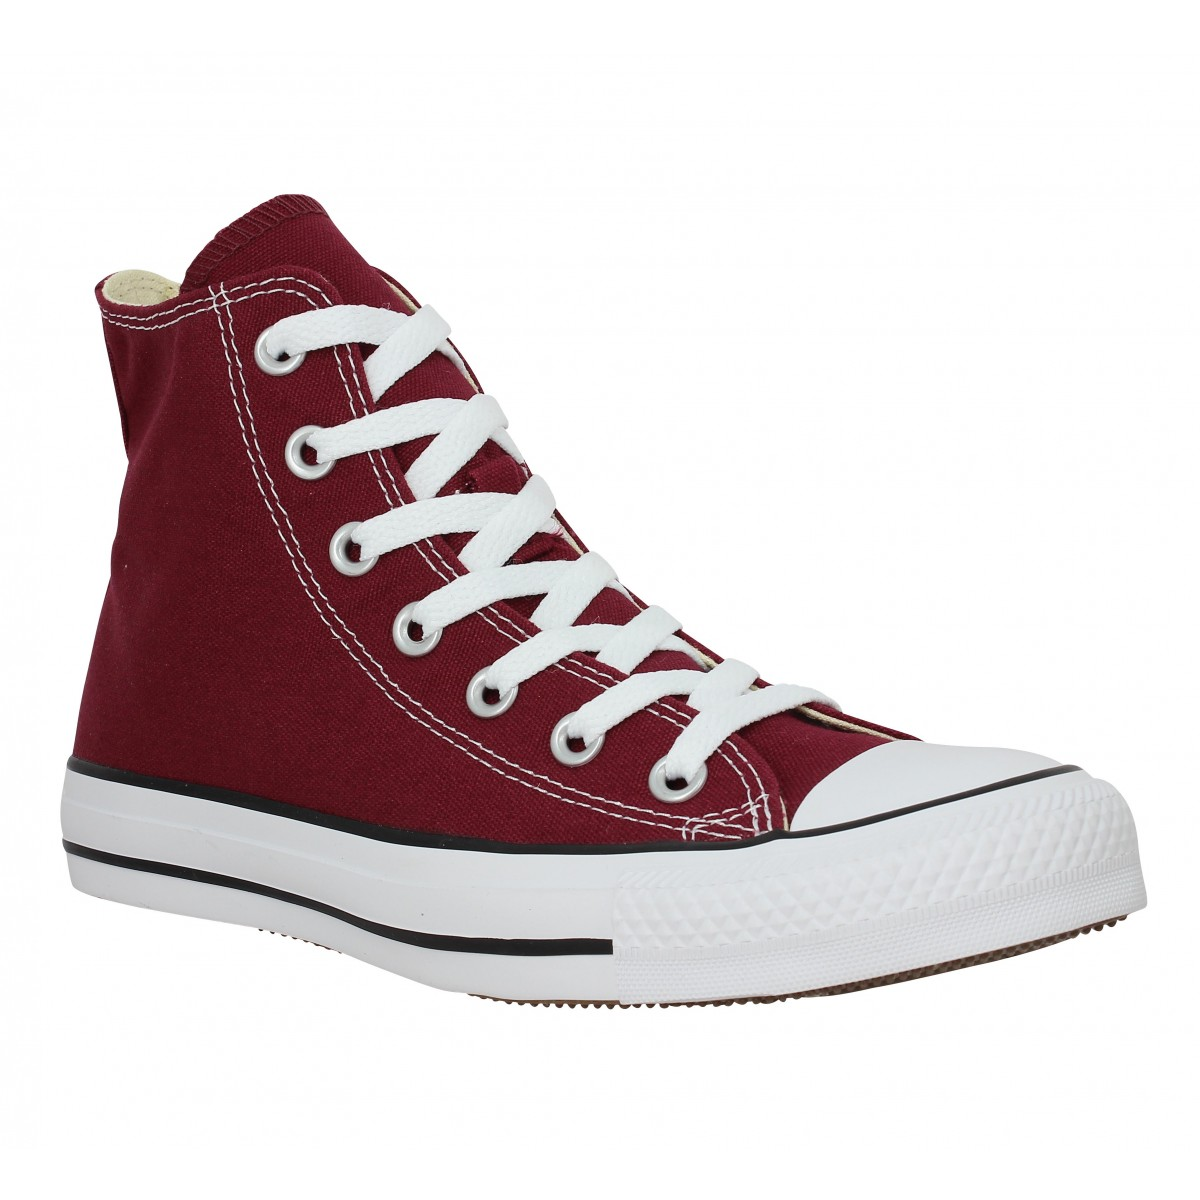 0825979378a85 Baskets CONVERSE Chuck Taylor All Star Hi toile Femme Bordeaux